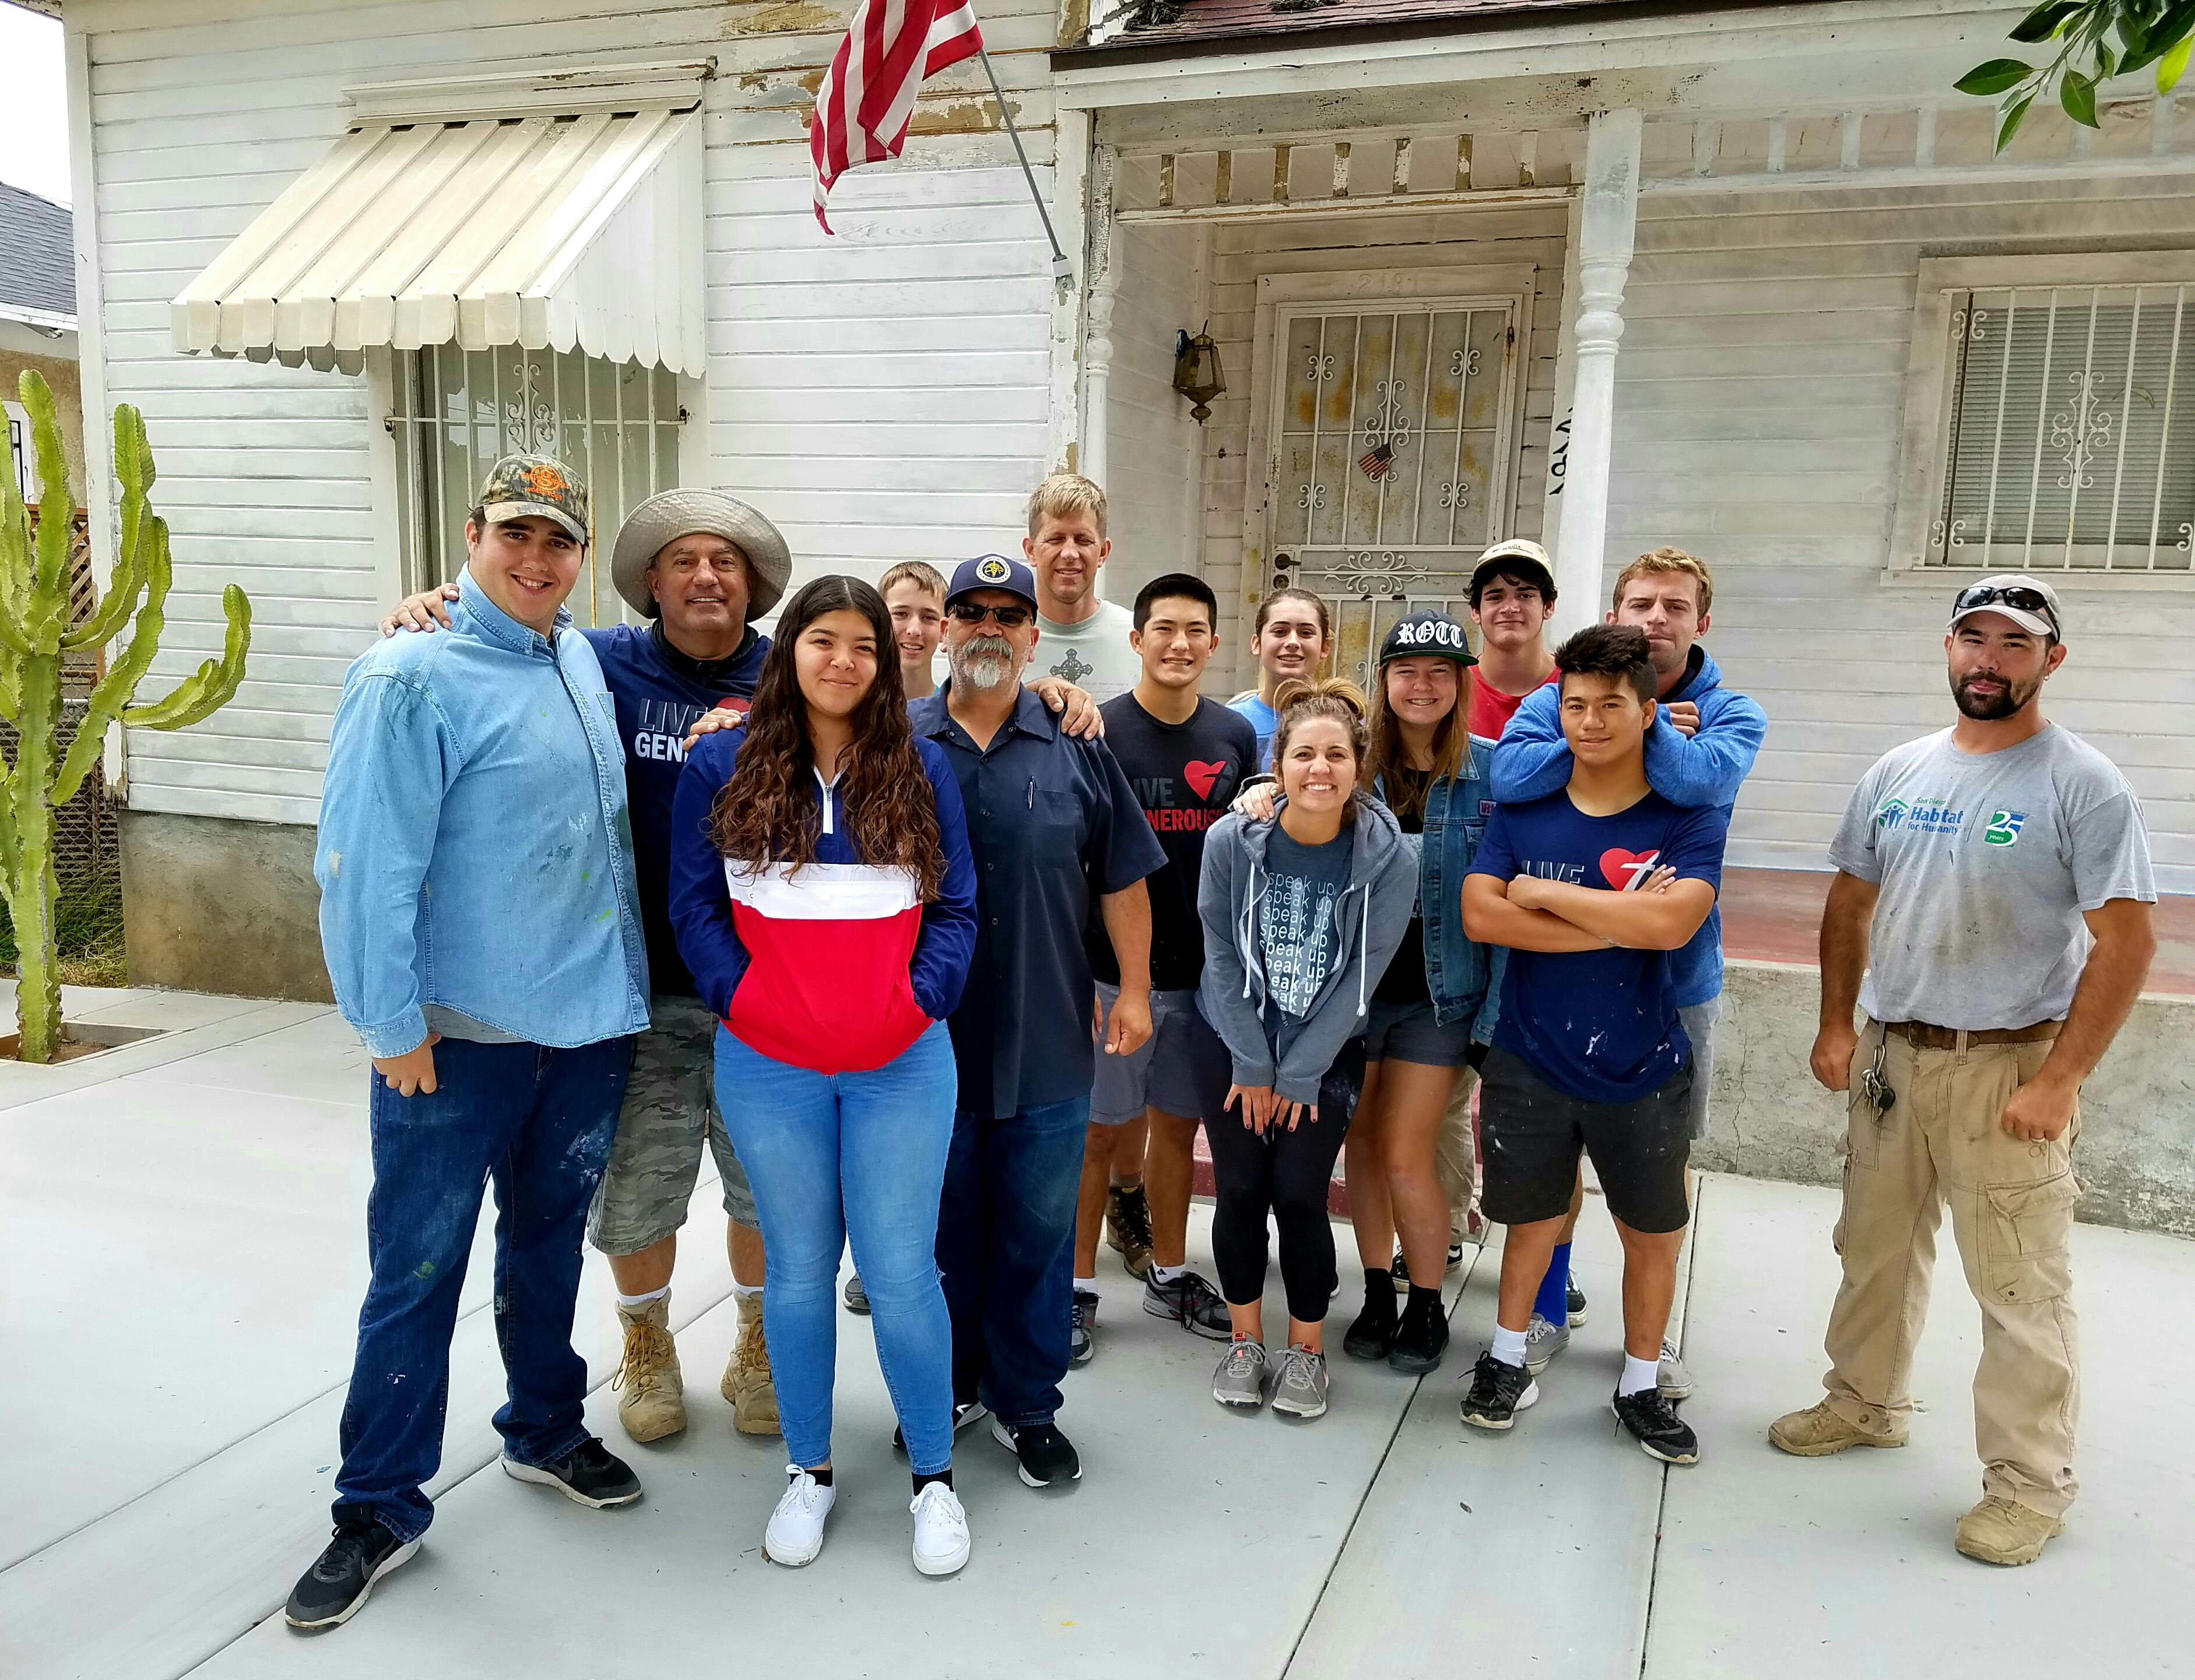 Youth group poses for photo after community service project